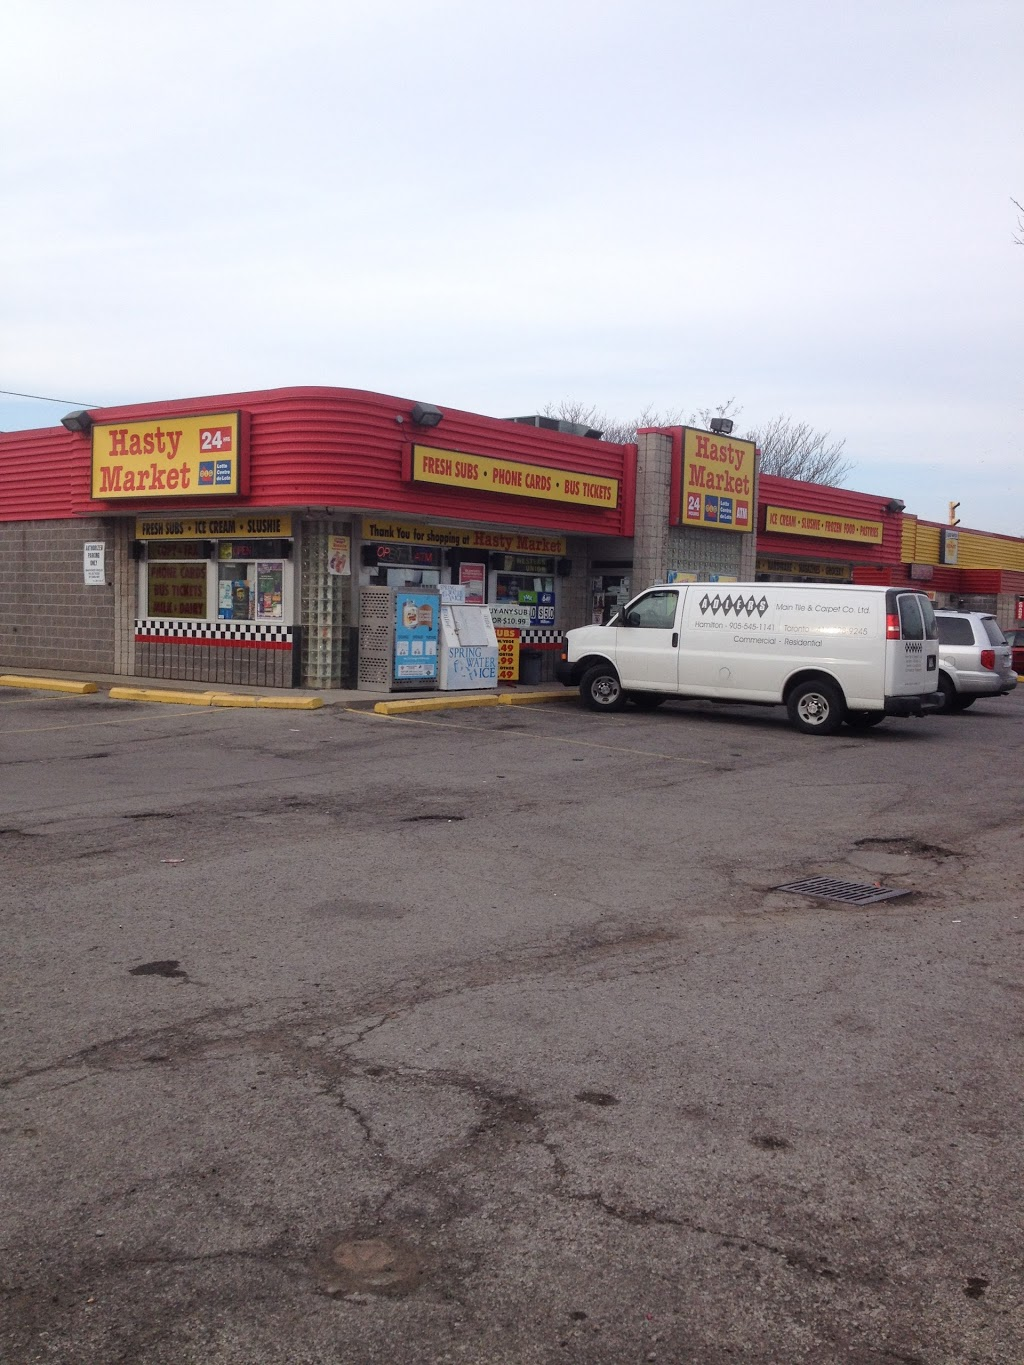 Hasty Market | convenience store | 217 Cannon St E, Hamilton, ON L8L 2A9, Canada | 9057778624 OR +1 905-777-8624